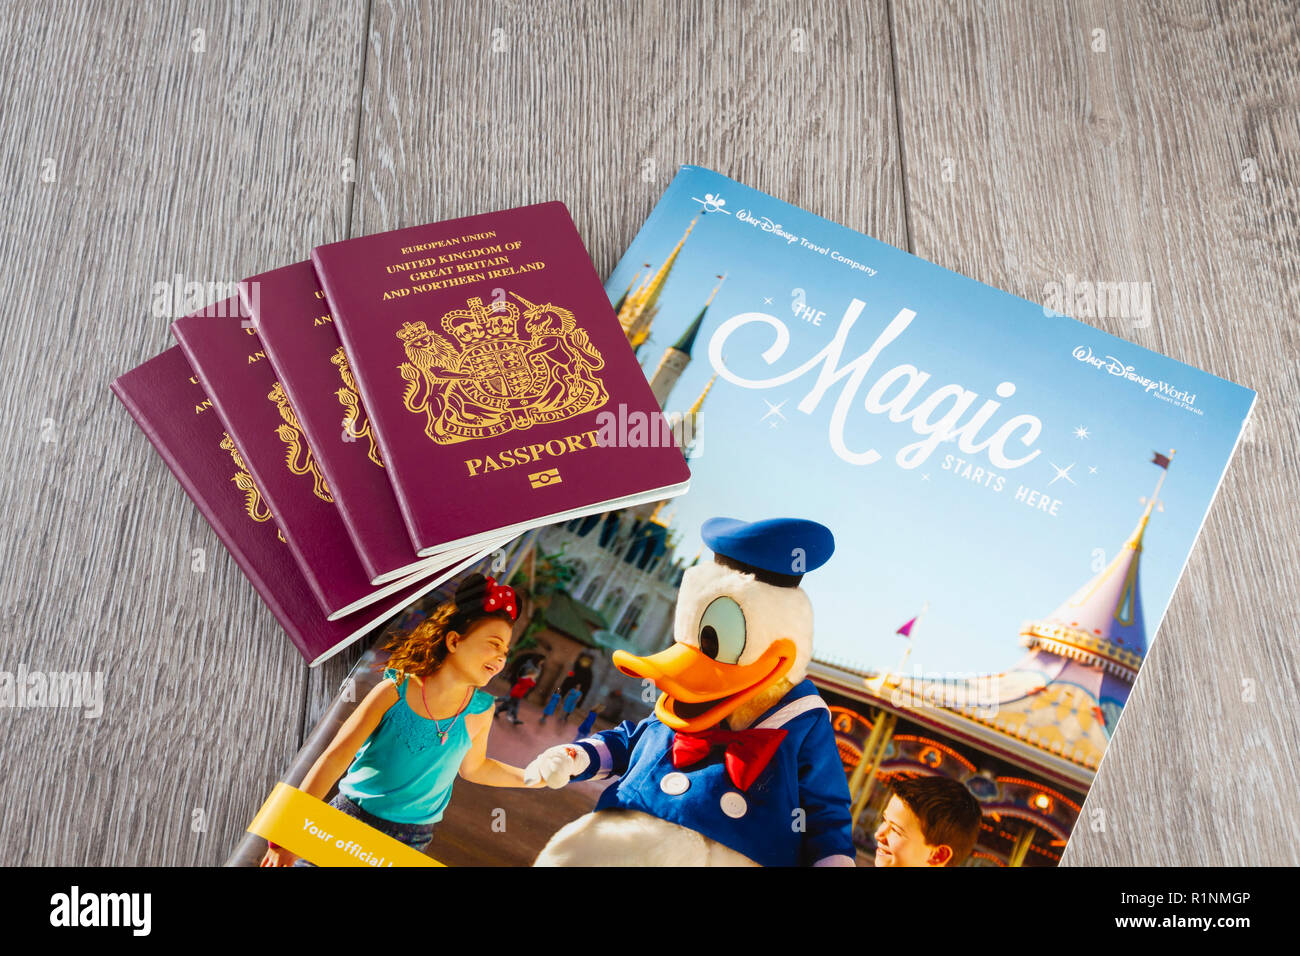 Four passports with a Disney World Travel Brochure - Stock Image